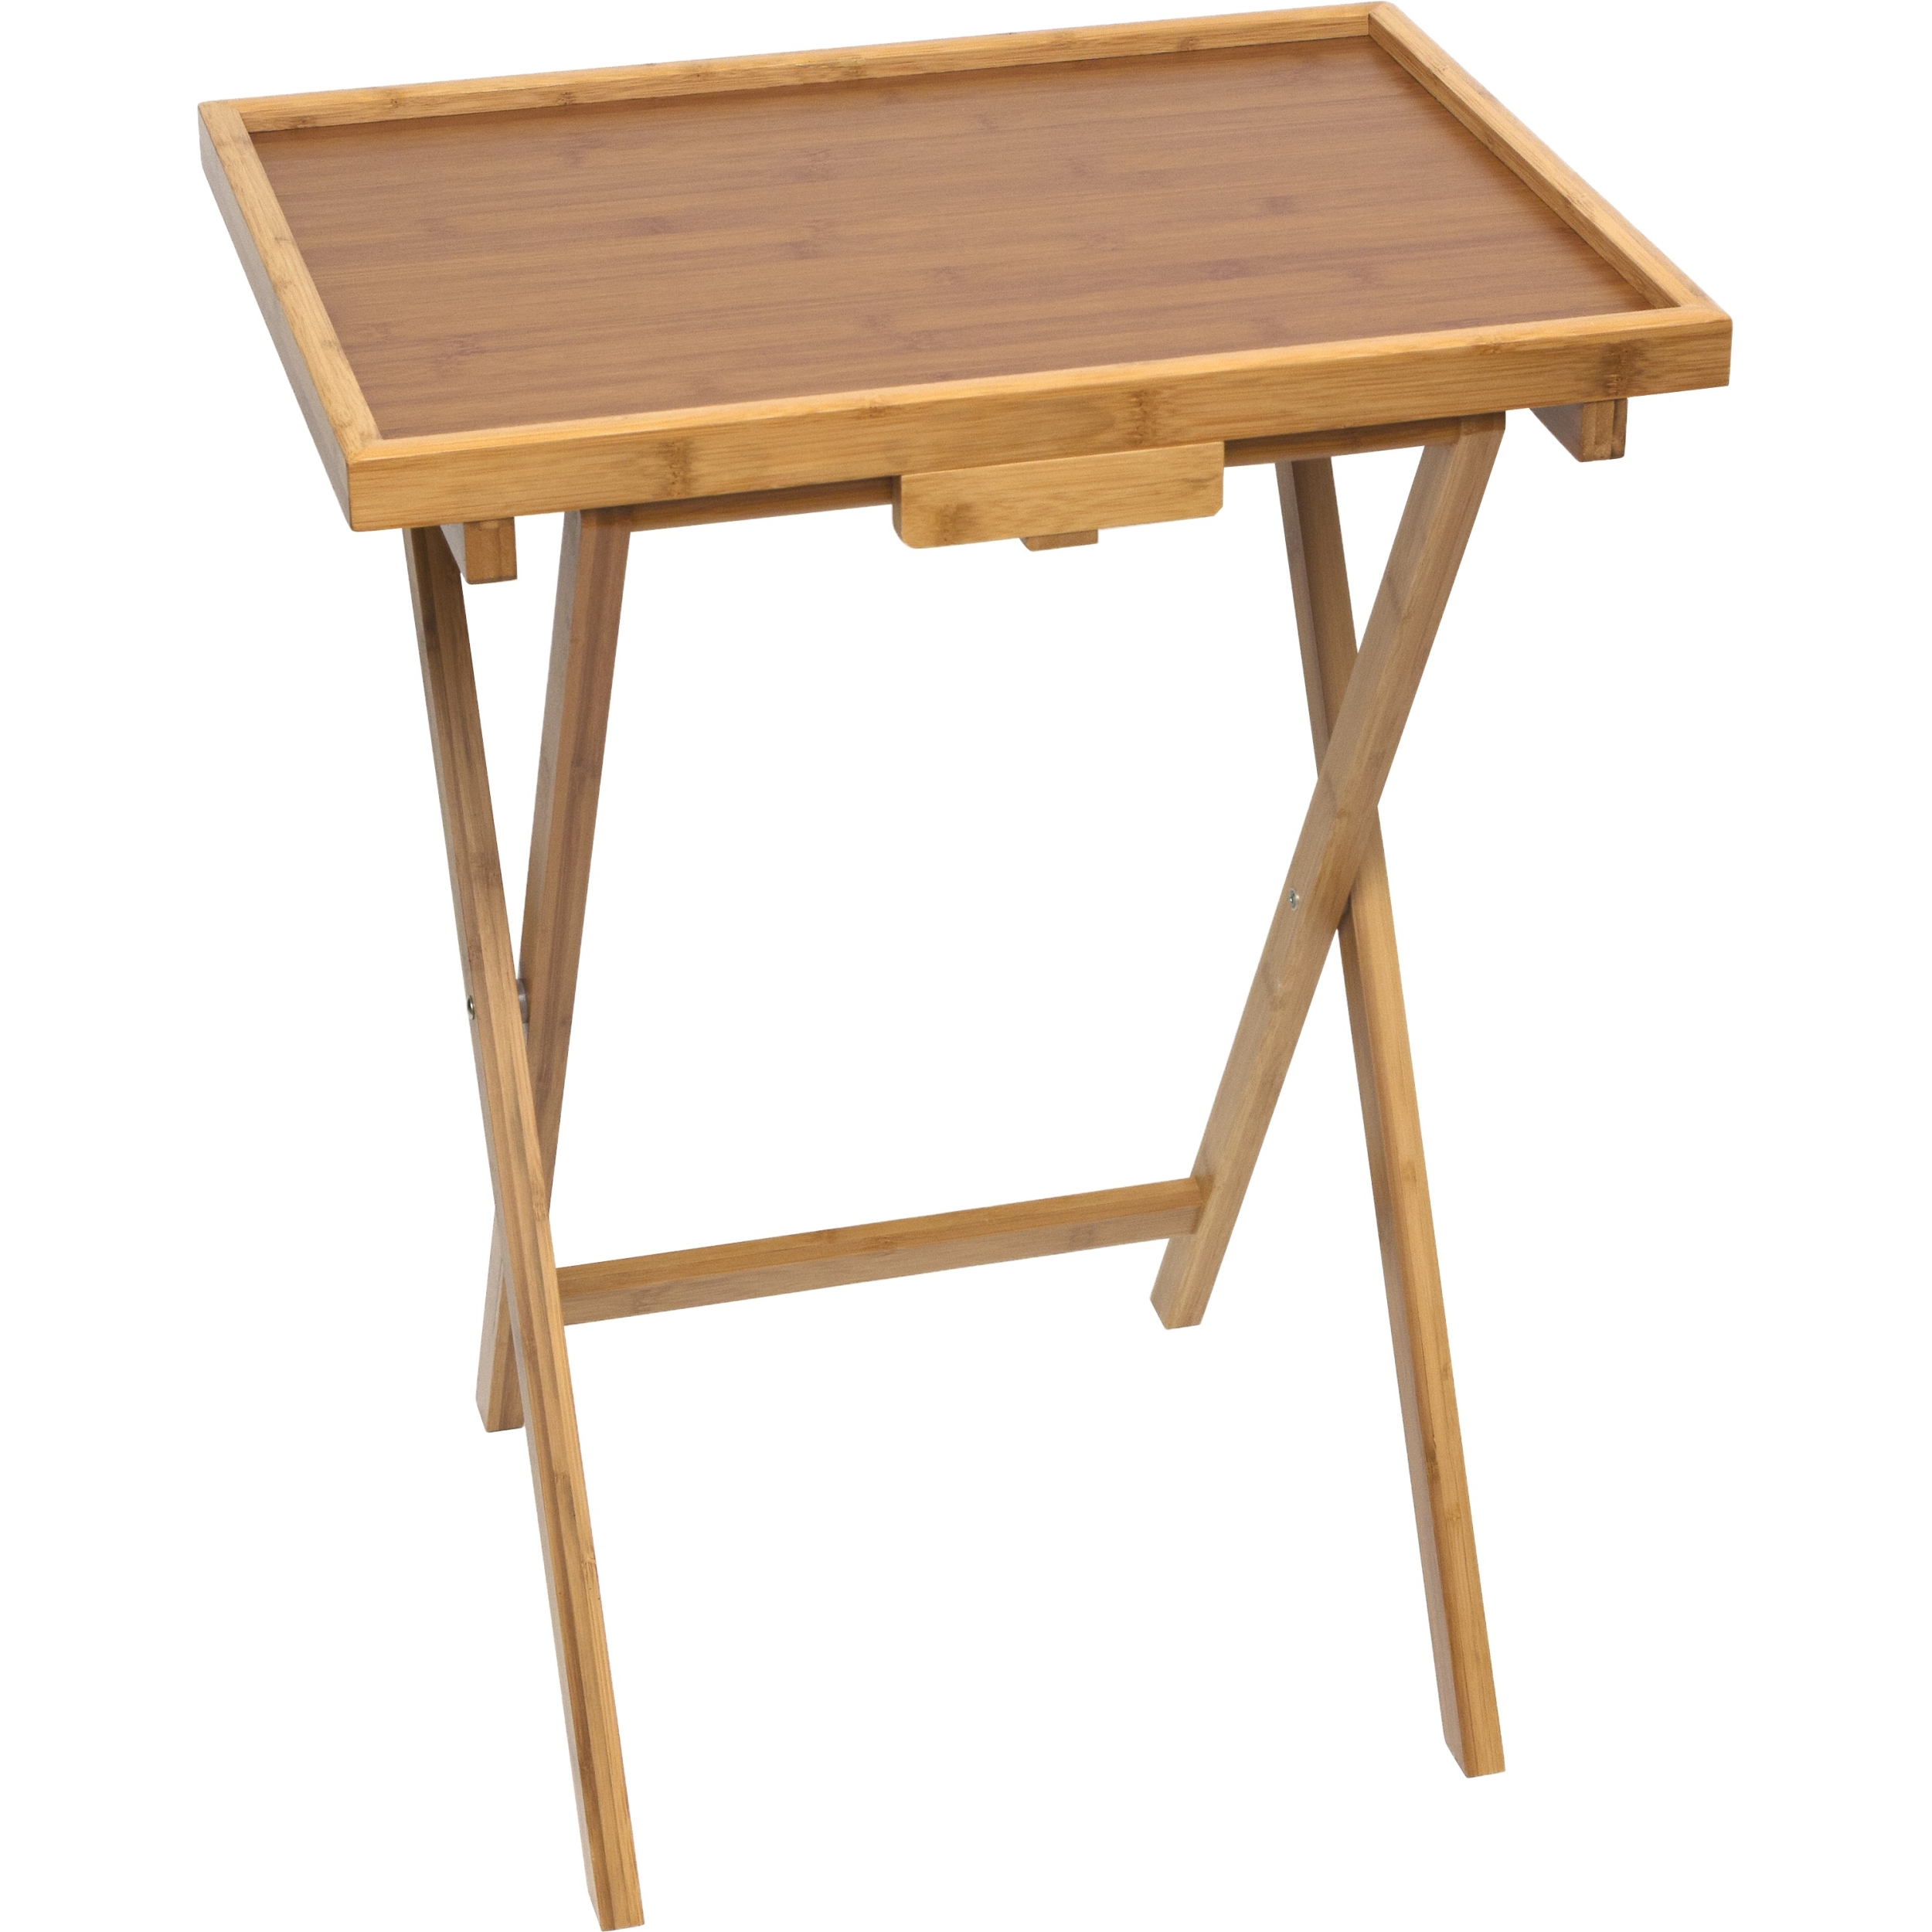 Lipper Snack Table with Lip, Set of Two, Bamboo 801/2